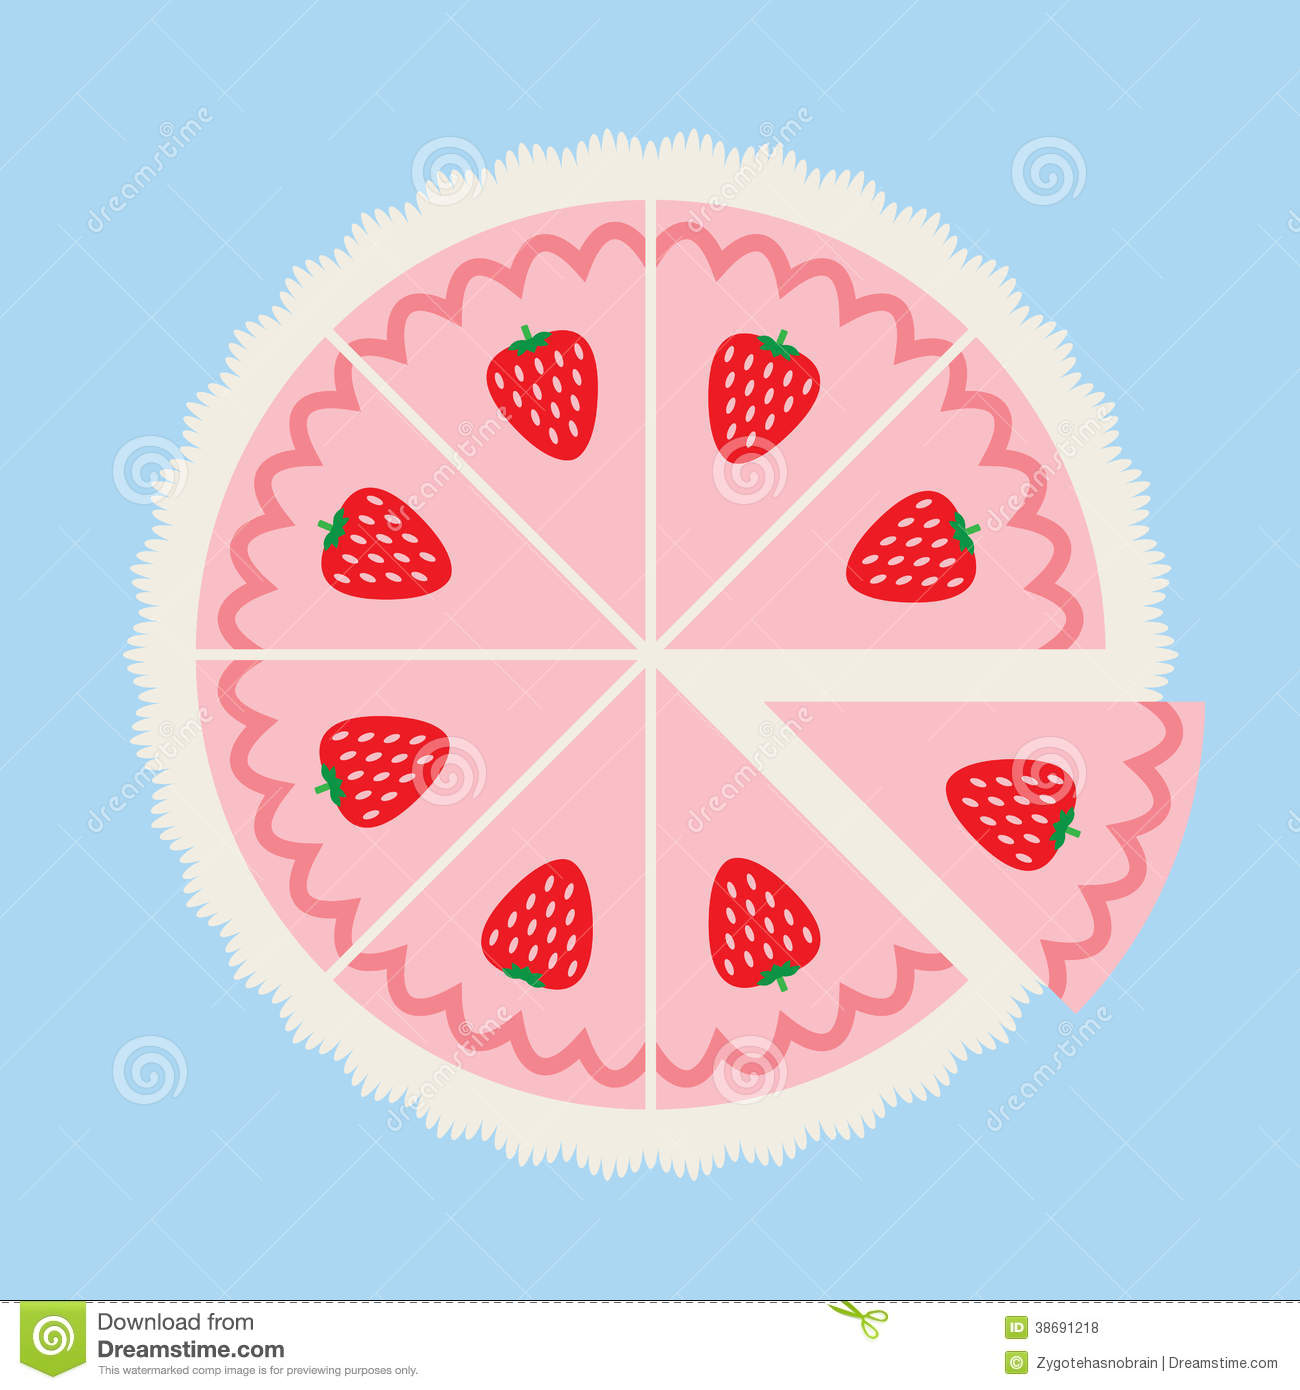 Cake Clipart Top View : Strawberry Cake Royalty Free Stock Photos - Image: 38691218